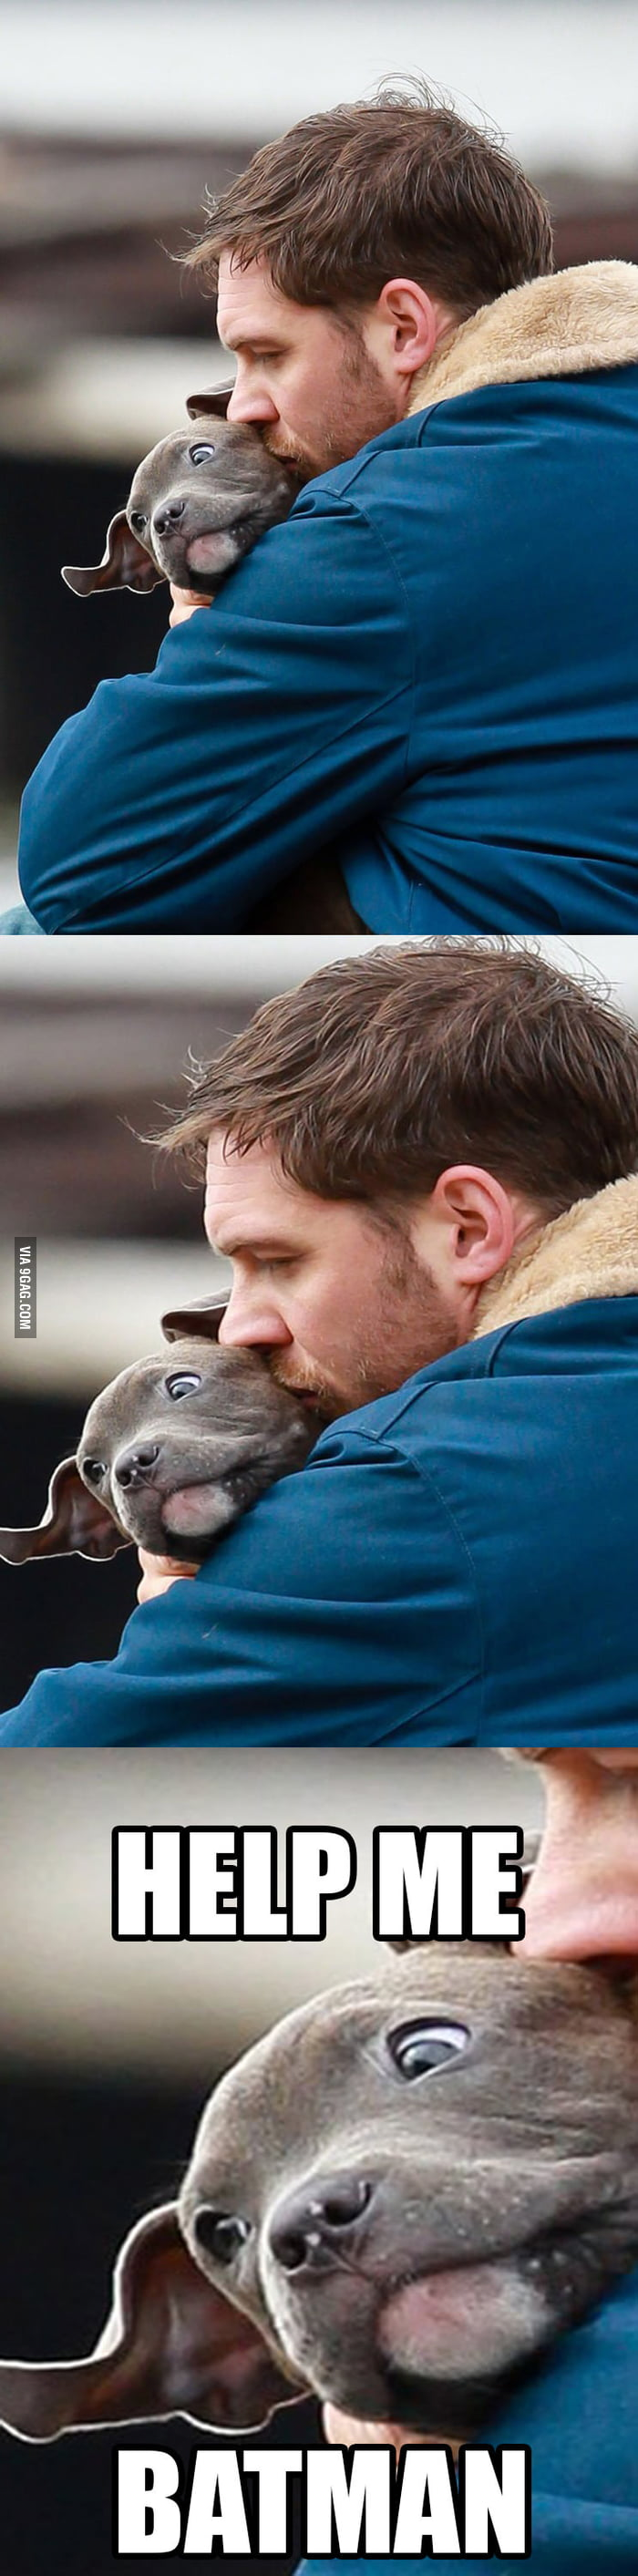 Bane is a dog lover.